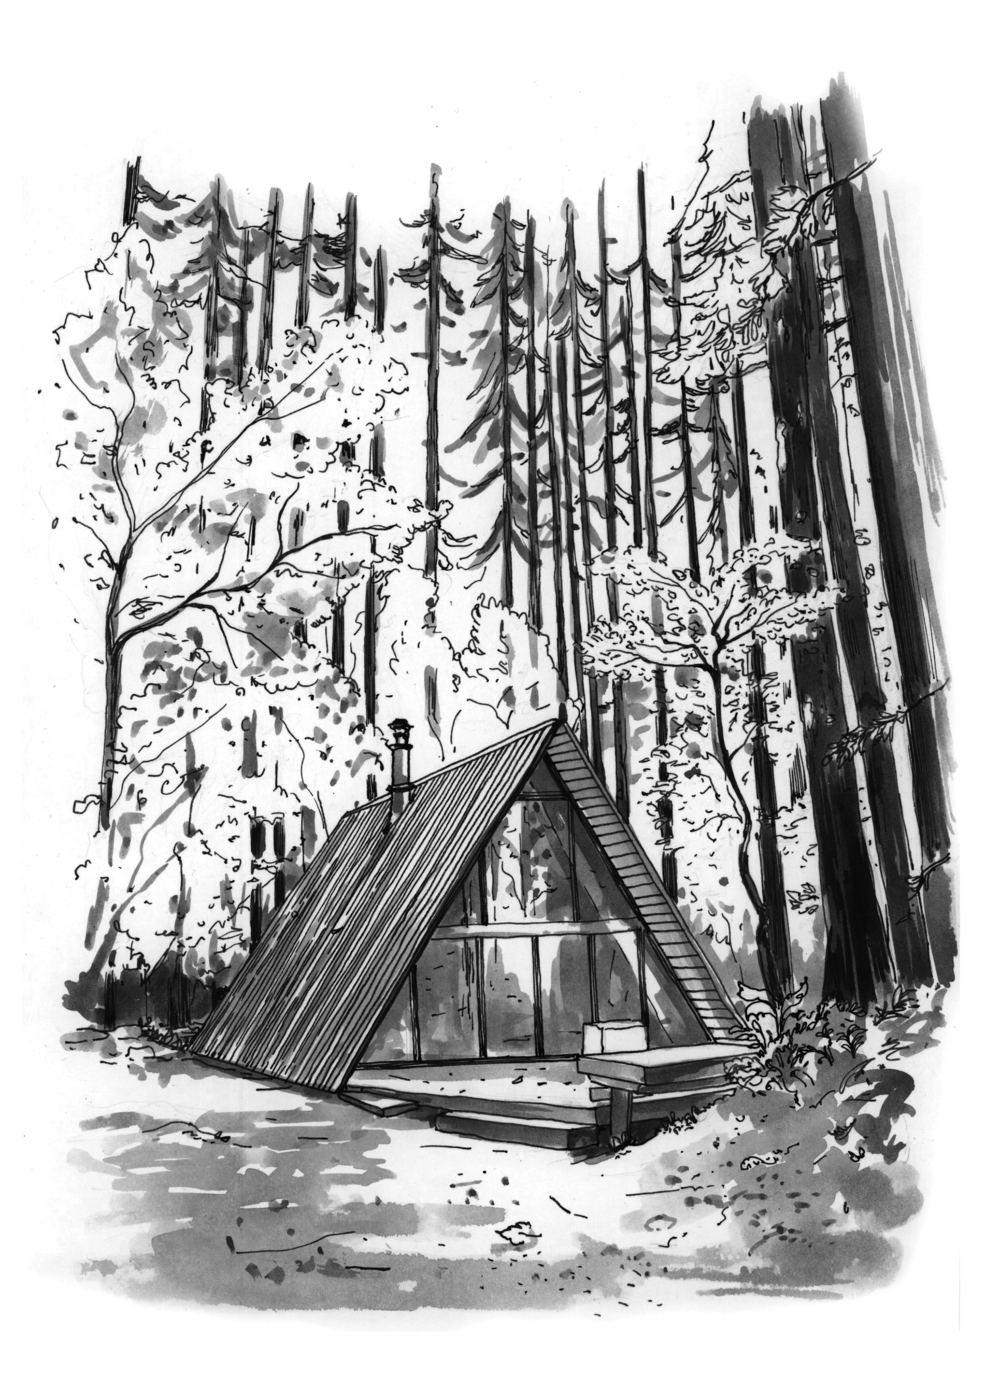 tye river cabin co